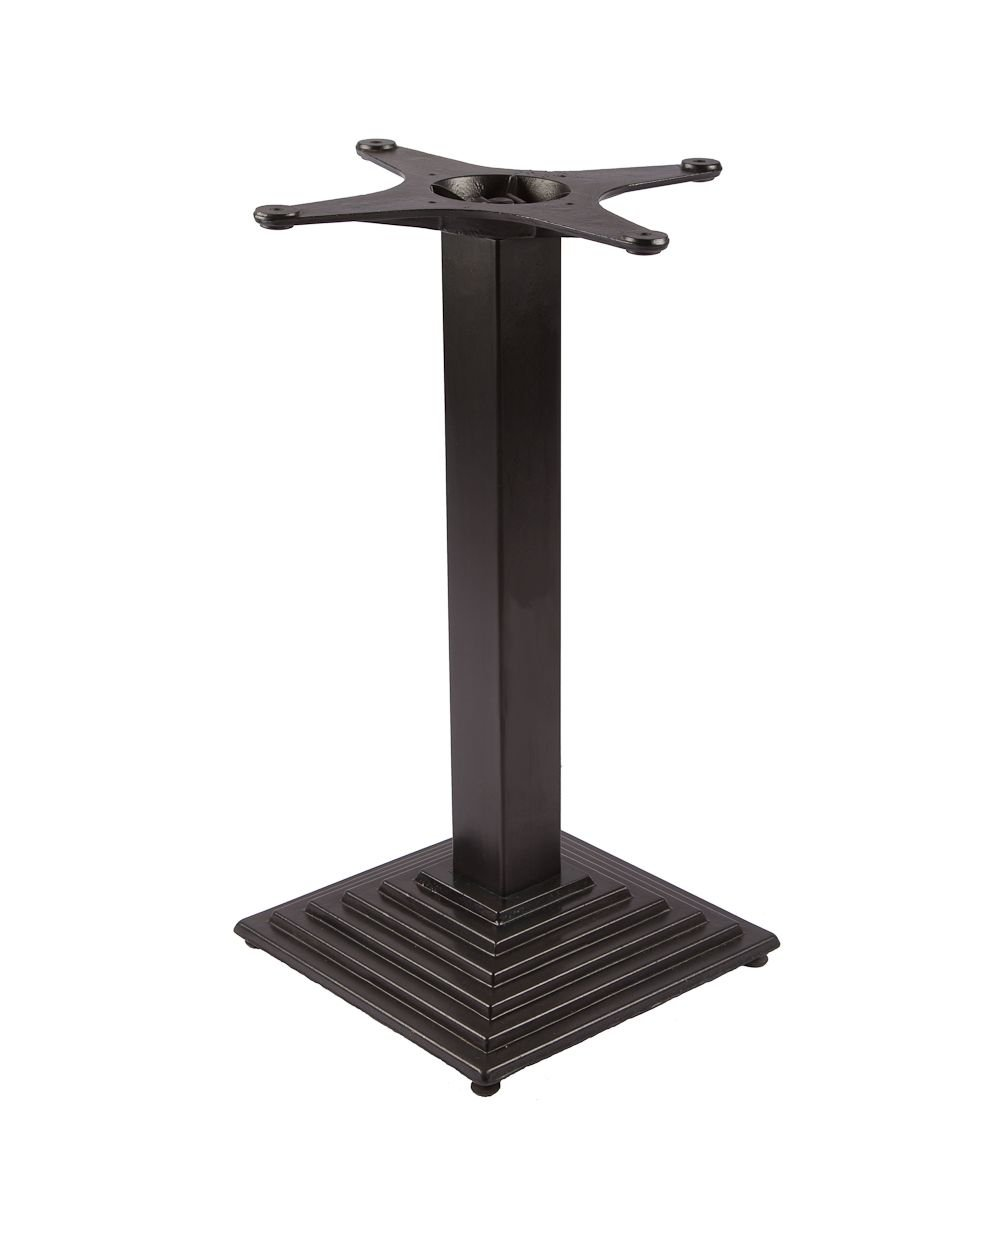 Tb 108 dining height cast iron indoor decorative table base for 108 table seats how many